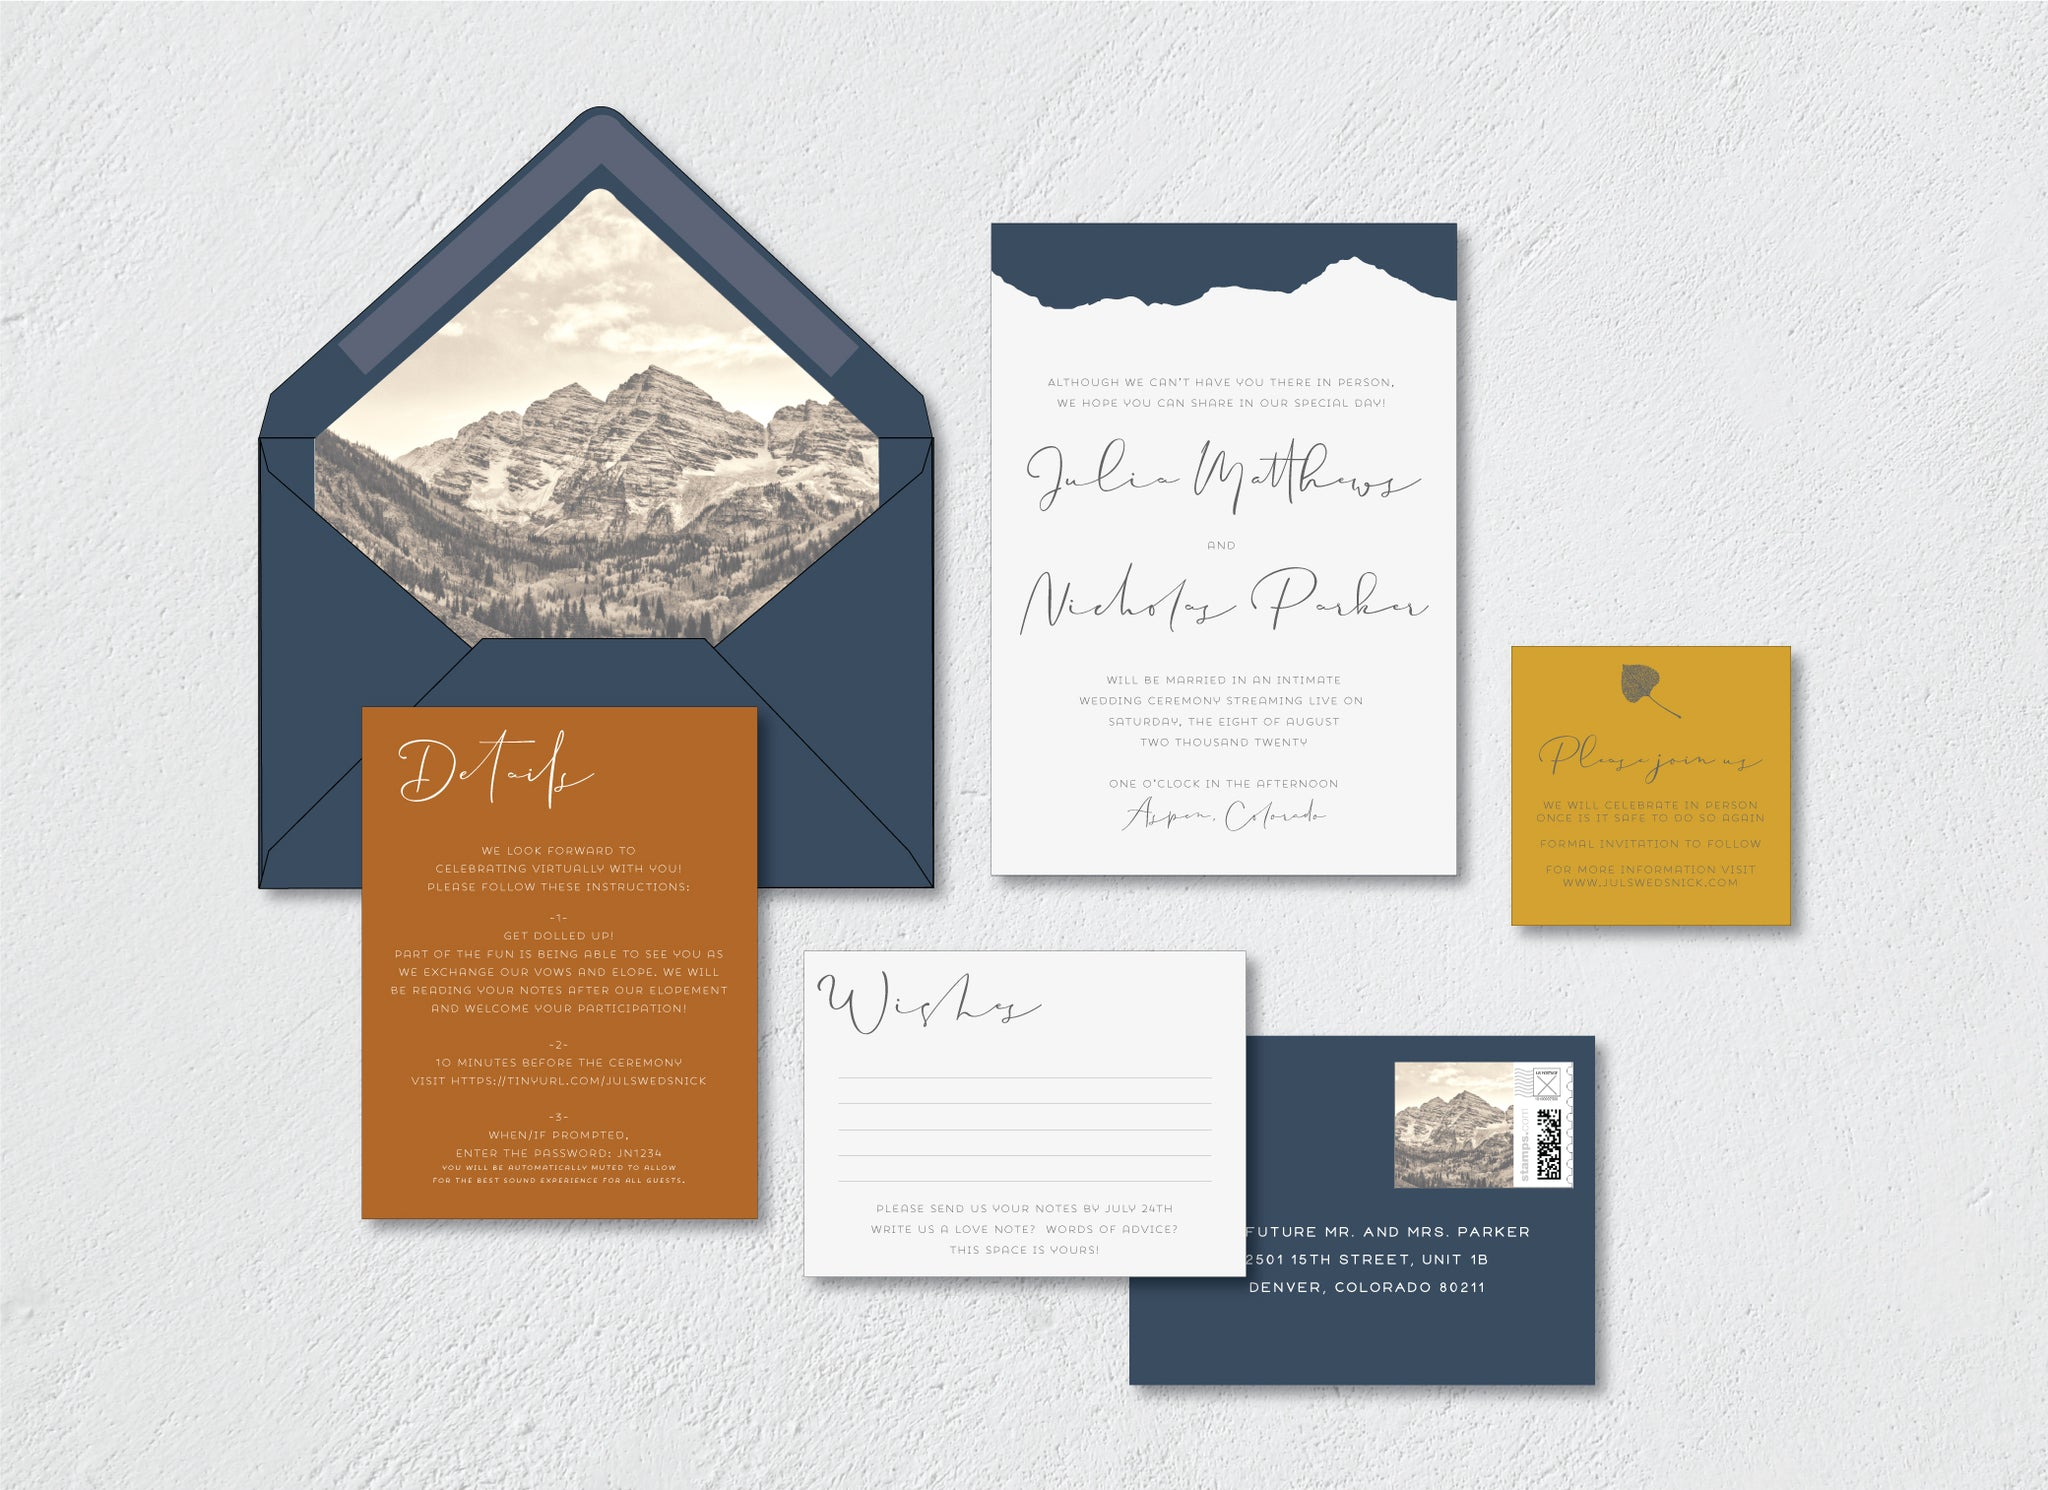 Lucky Onion Aspen Mountain Virtual Wedding Elopement Invitation Stationery Suite in Coronavirus Times